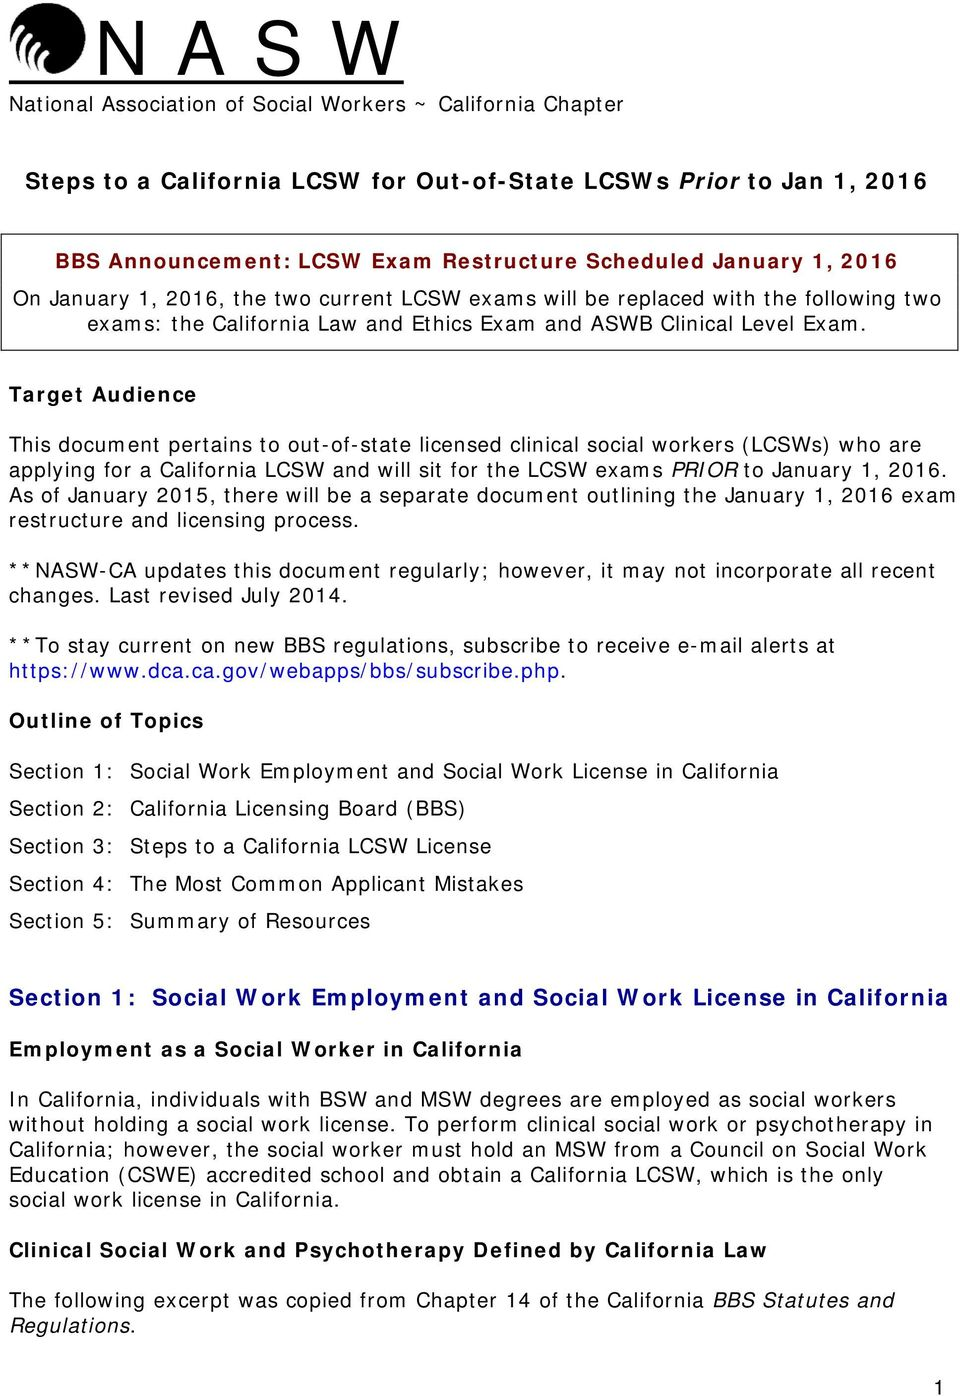 Target Audience This document pertains to out-of-state licensed clinical social workers (LCSWs) who are applying for a California LCSW and will sit for the LCSW exams PRIOR to January 1, 2016.